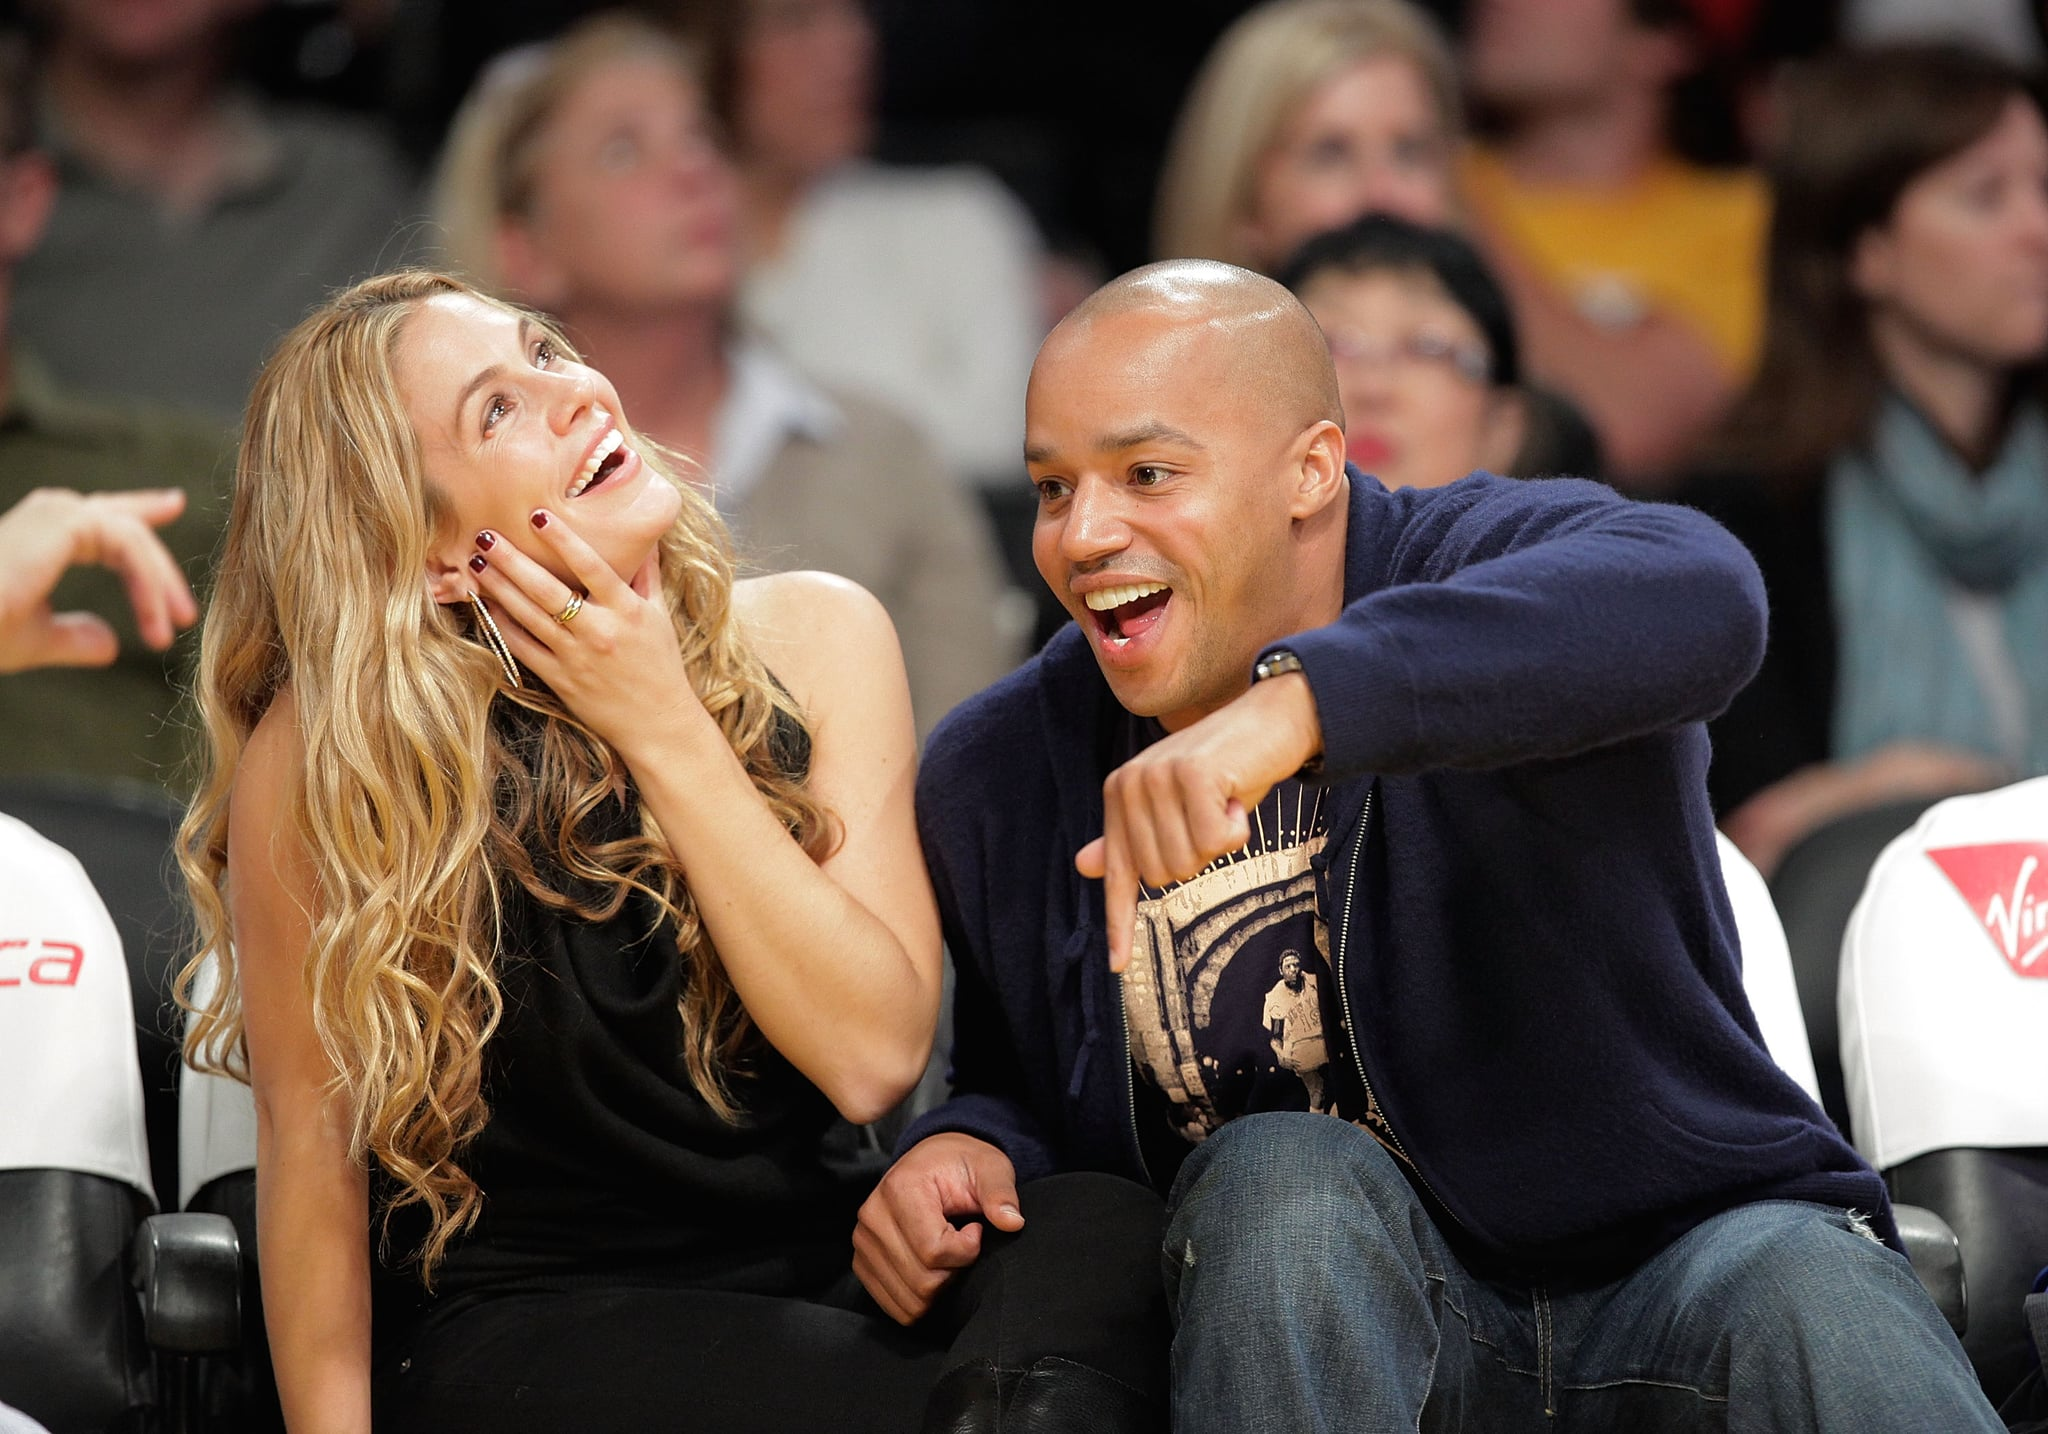 CaCee Cobb and Donald Faison attended a Lakers game at the Staples Center in November 2009.